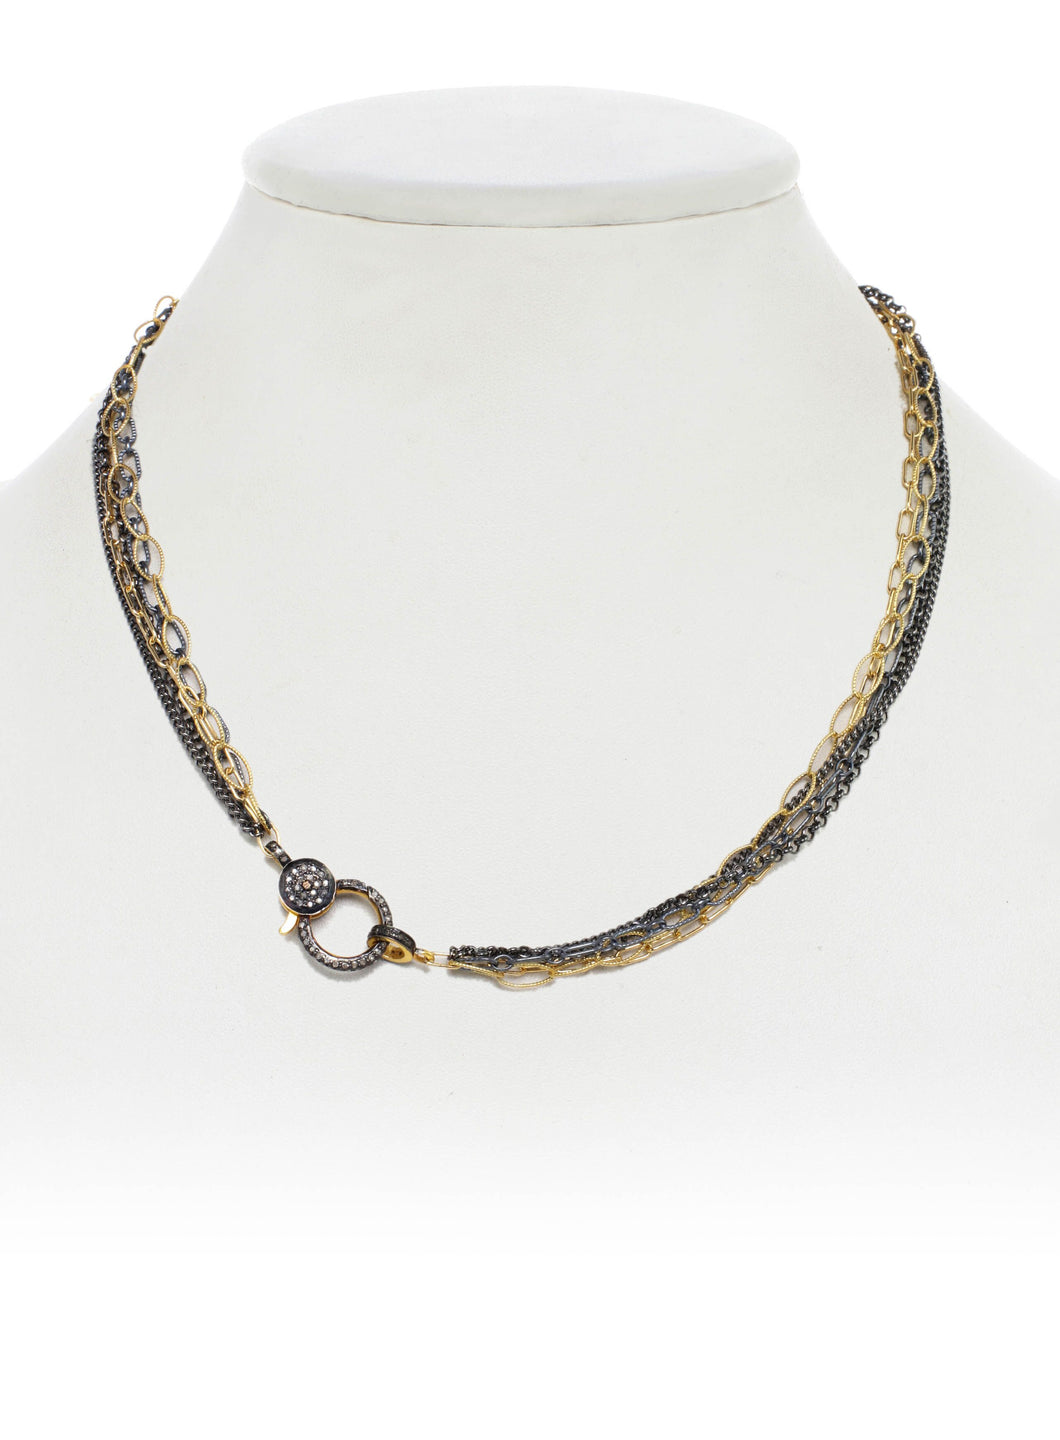 Gold & Silver Chain Necklace